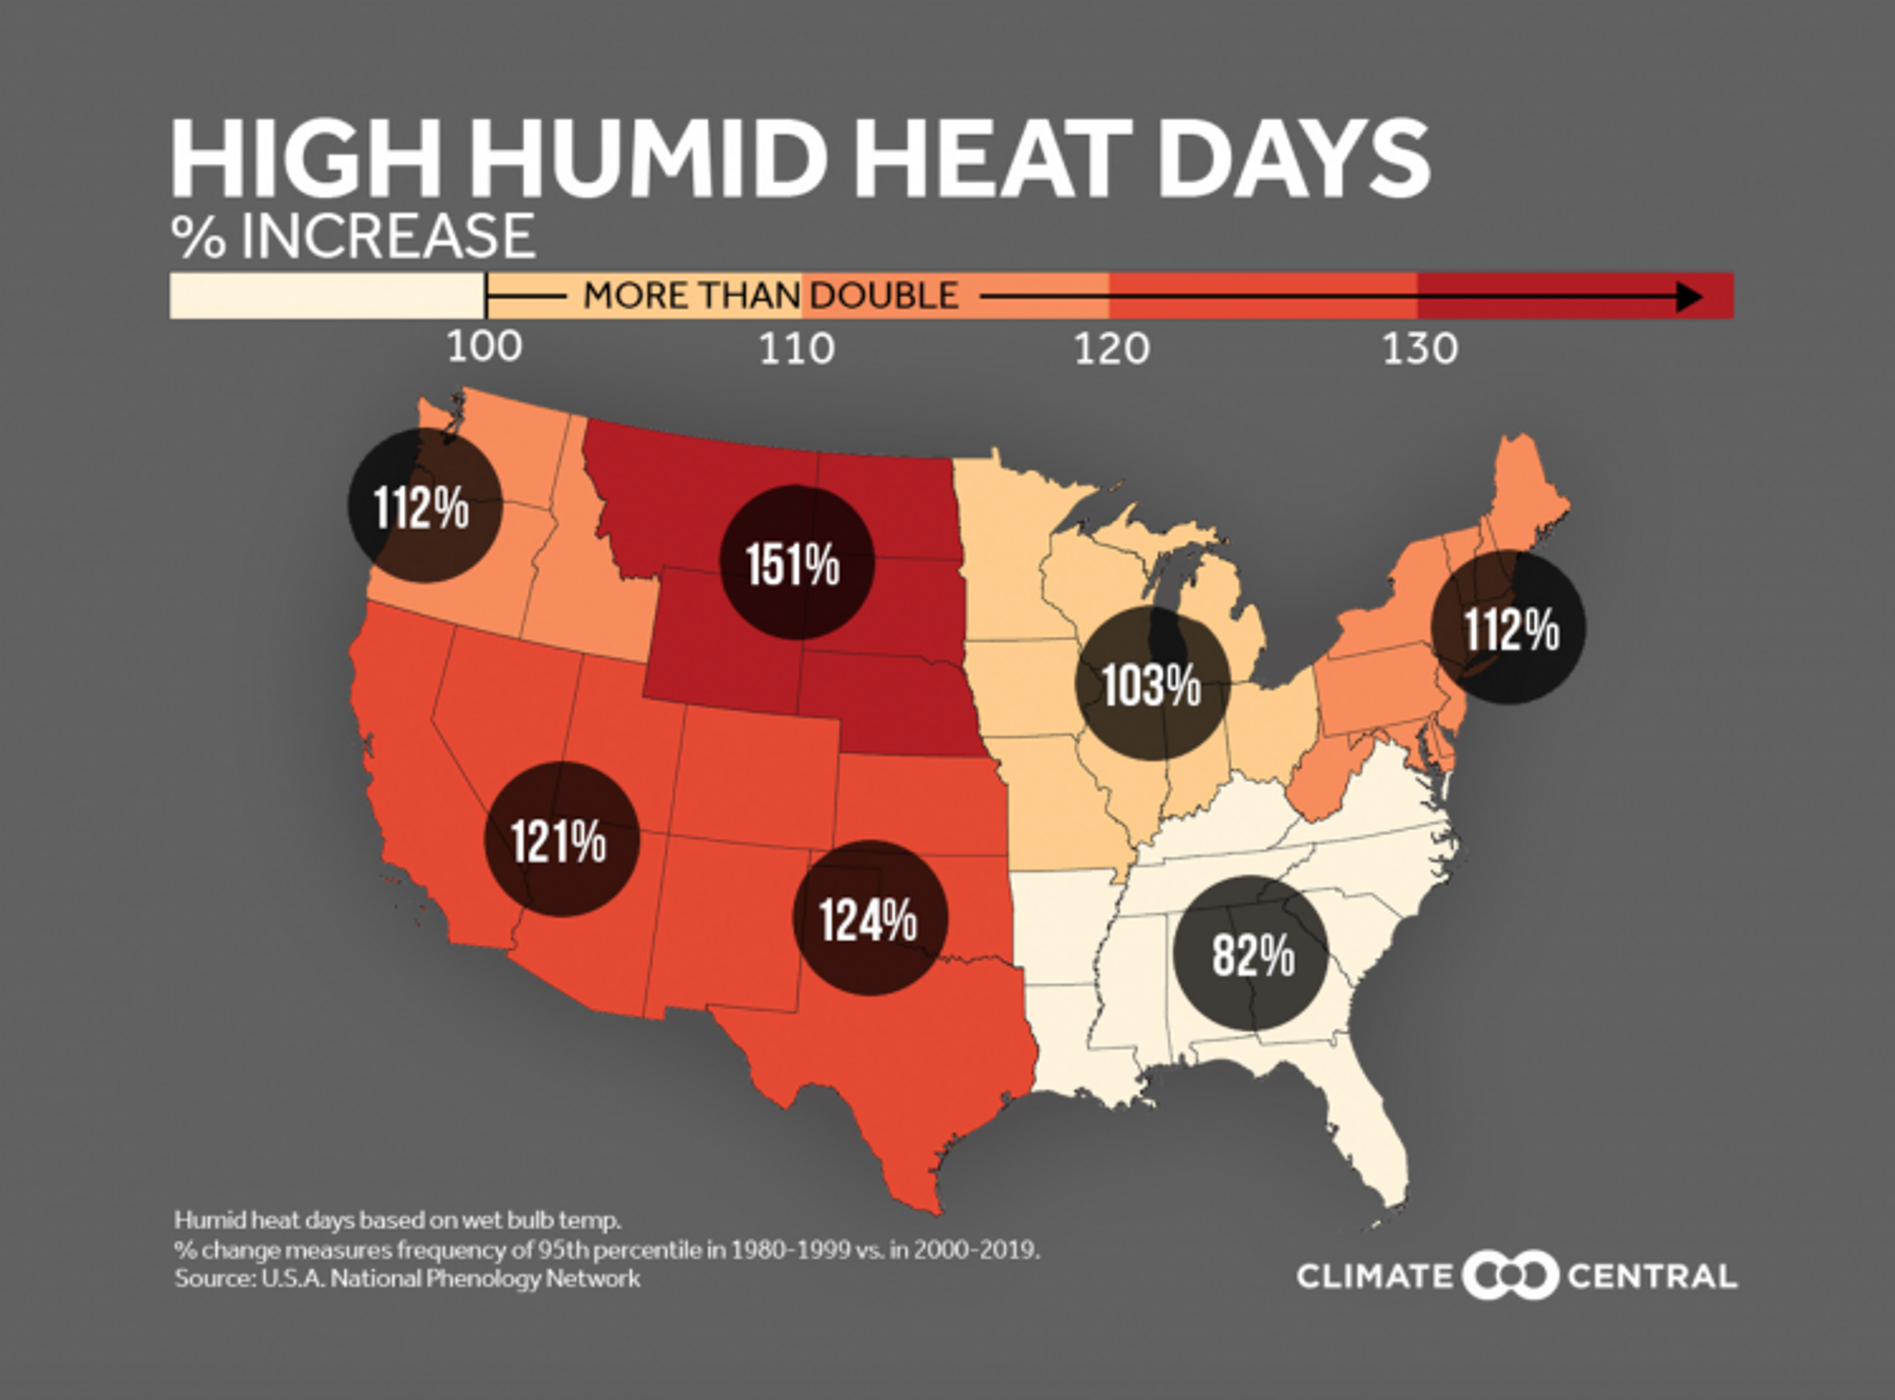 Humid heat days based on wet bulb temp